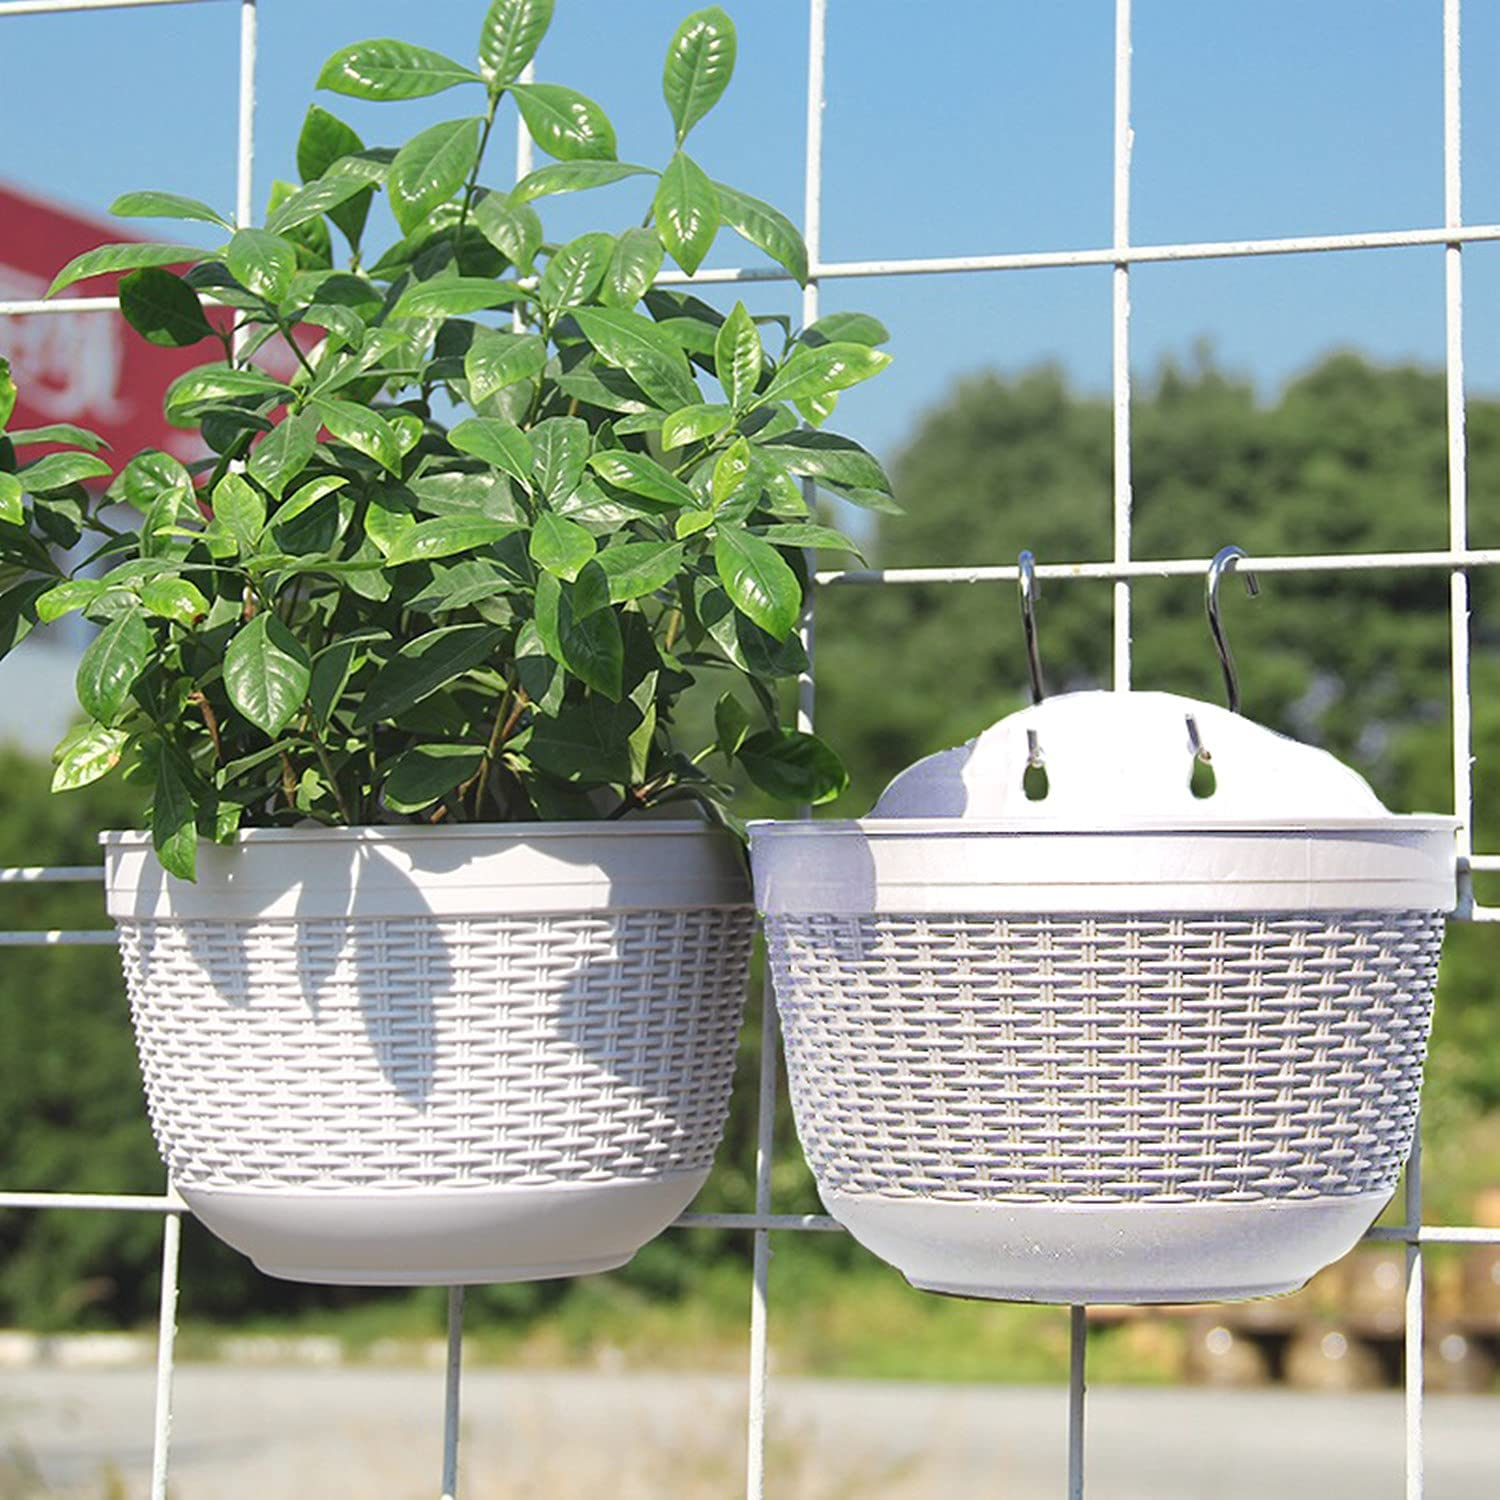 Homeleaf Wall and Railing Hanging Planters with S Hooks,Large Plastic Pots, Indoor and Outdoor Half Round Plant Holders for Fence, Balcony or Rails, Display Herb Gardens, Flowers or Plants 2PCS,White.